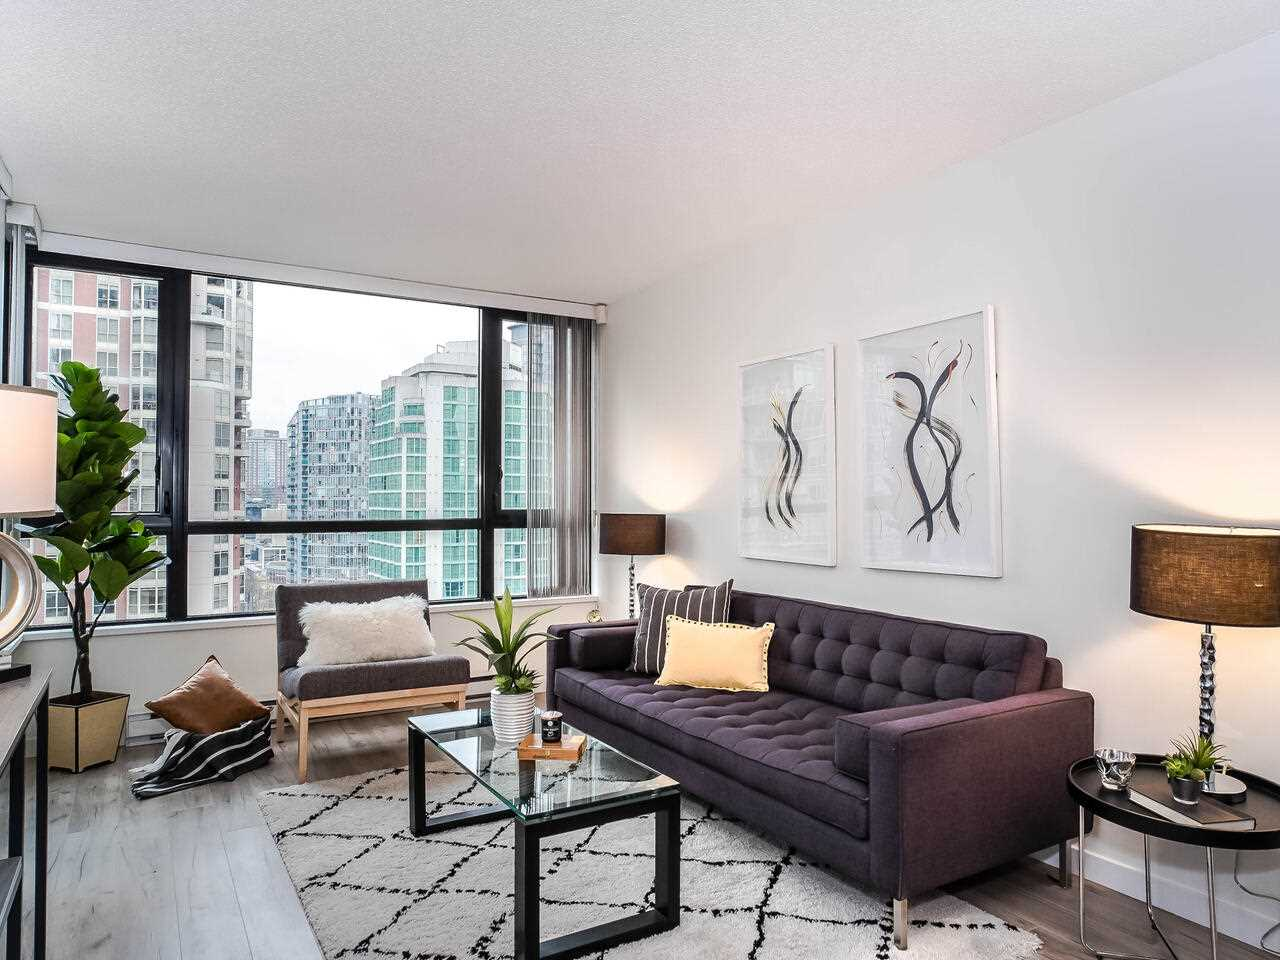 1810 909 MAINLAND STREET - Yaletown Apartment/Condo for sale, 1 Bedroom (R2518845) - #6